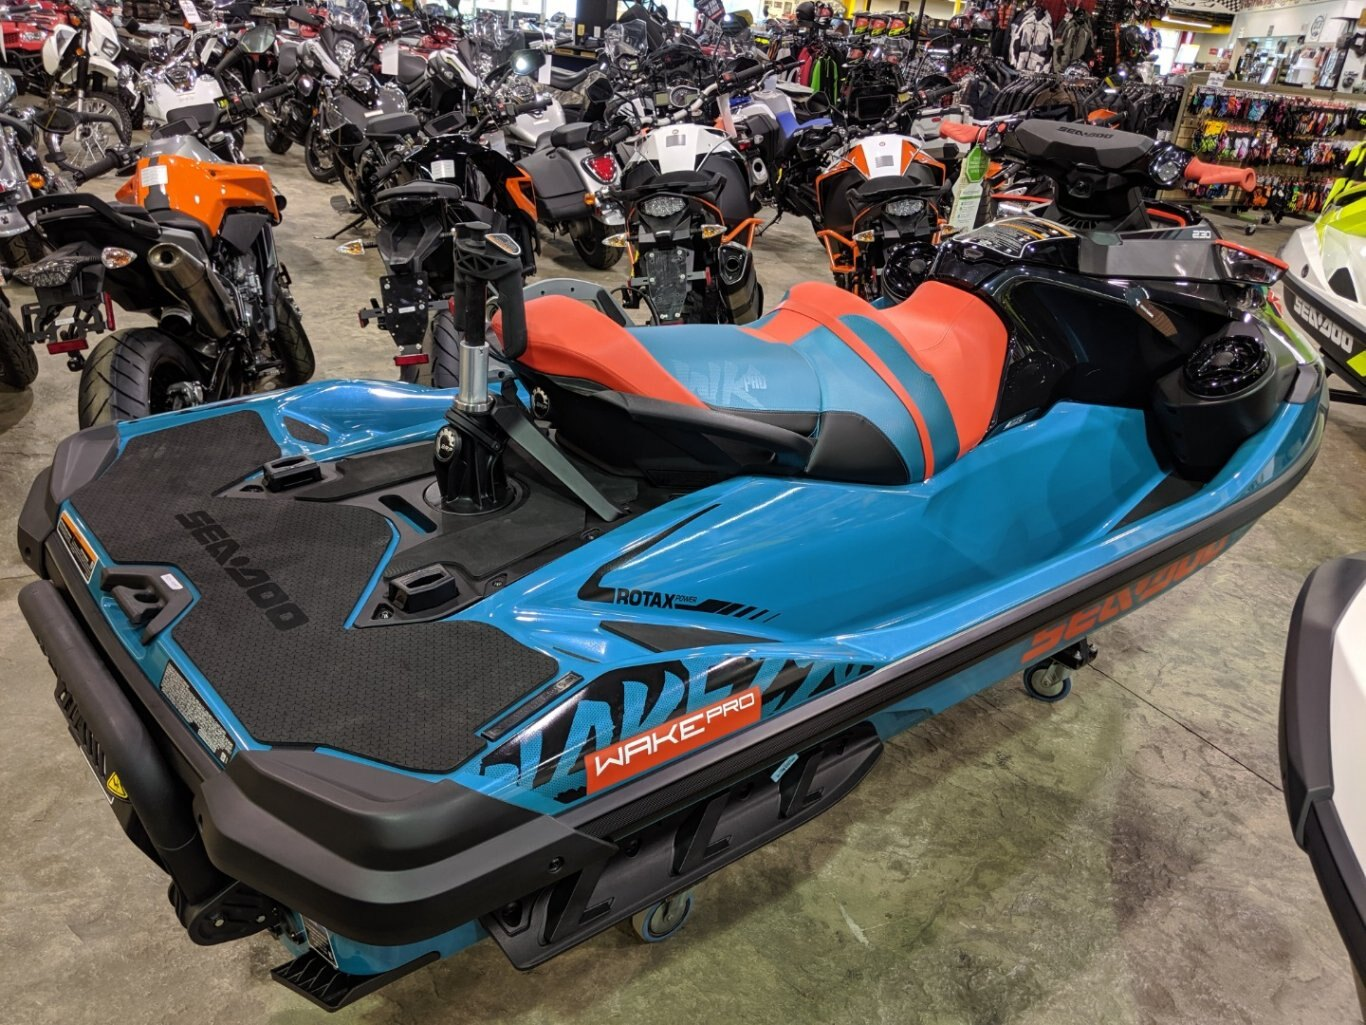 2019 Sea-Doo Wake Pro 230 WITH SOUND